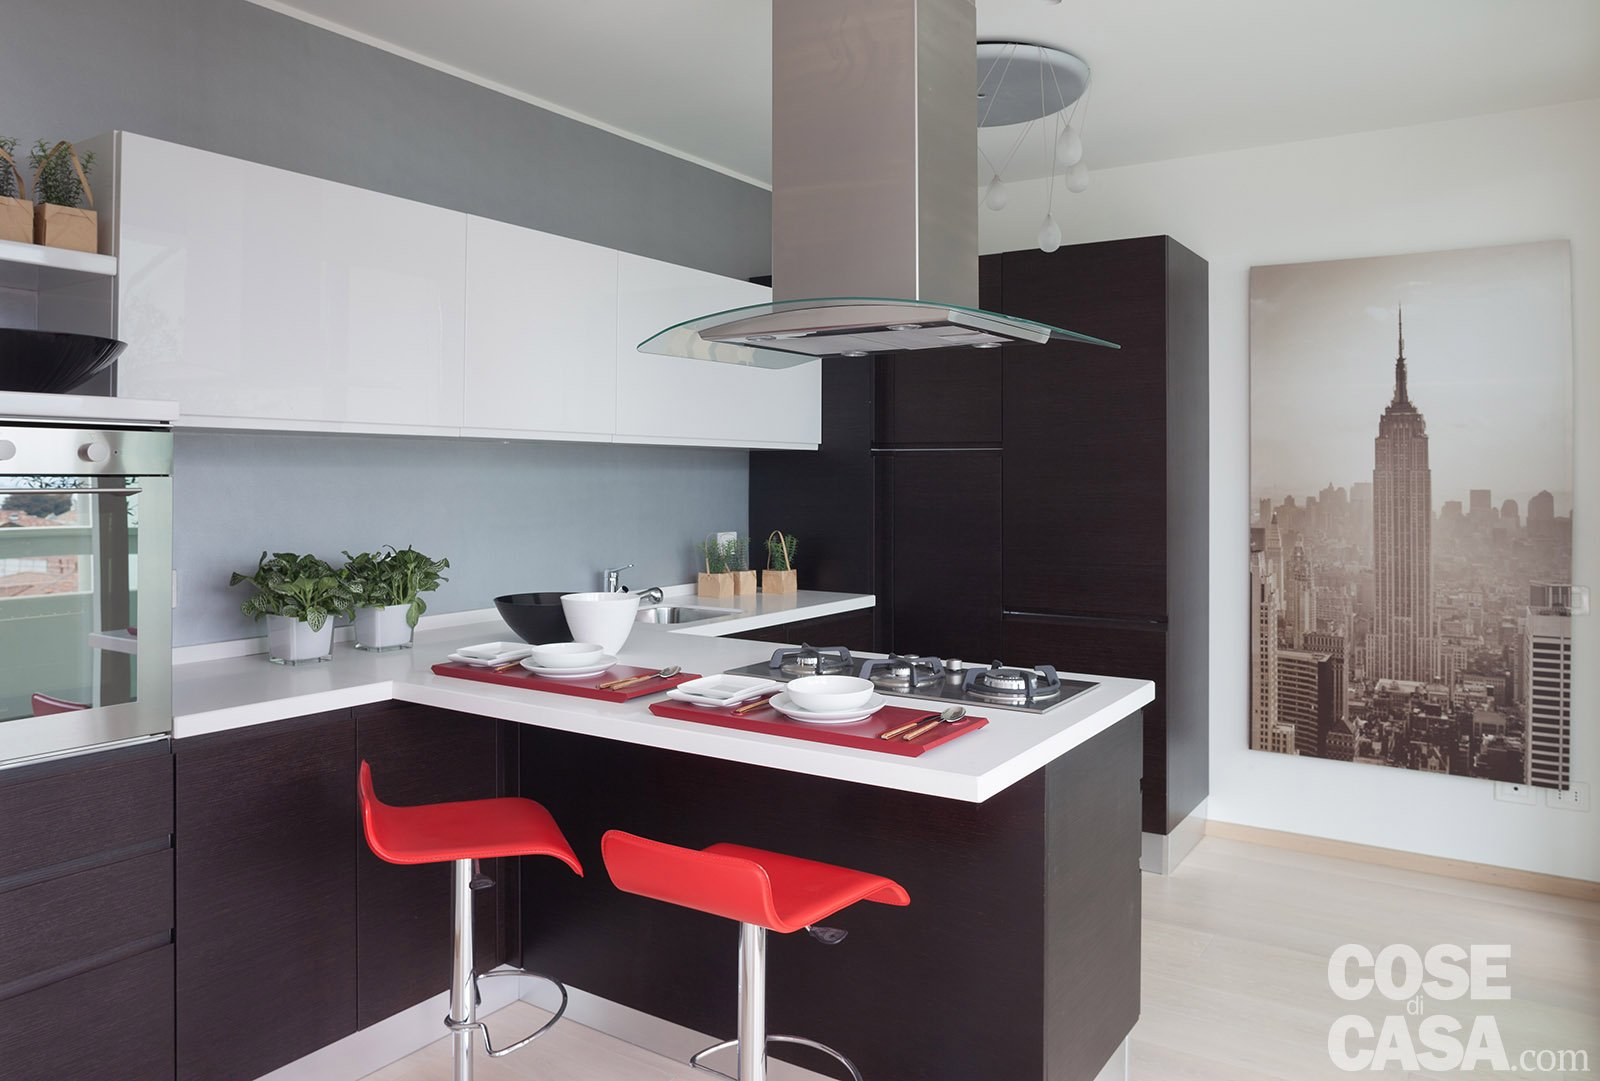 Beautiful Cucine Moderne Bianche E Rosse Photos - Home Design ...